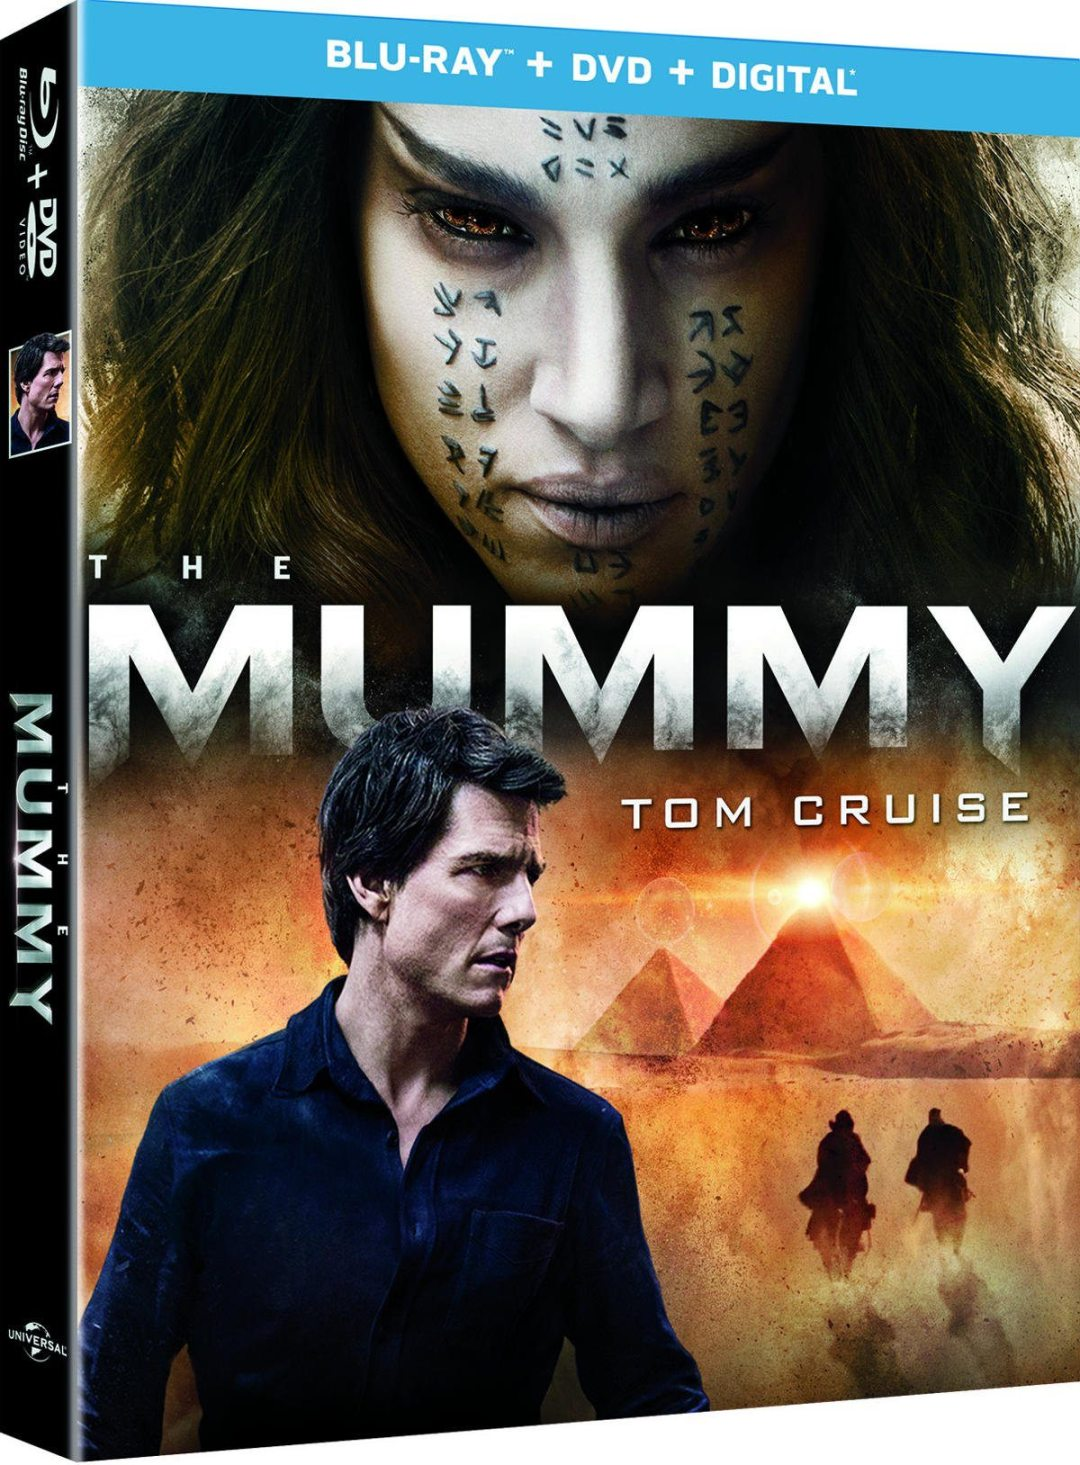 4K Release Details for 'The Mummy'